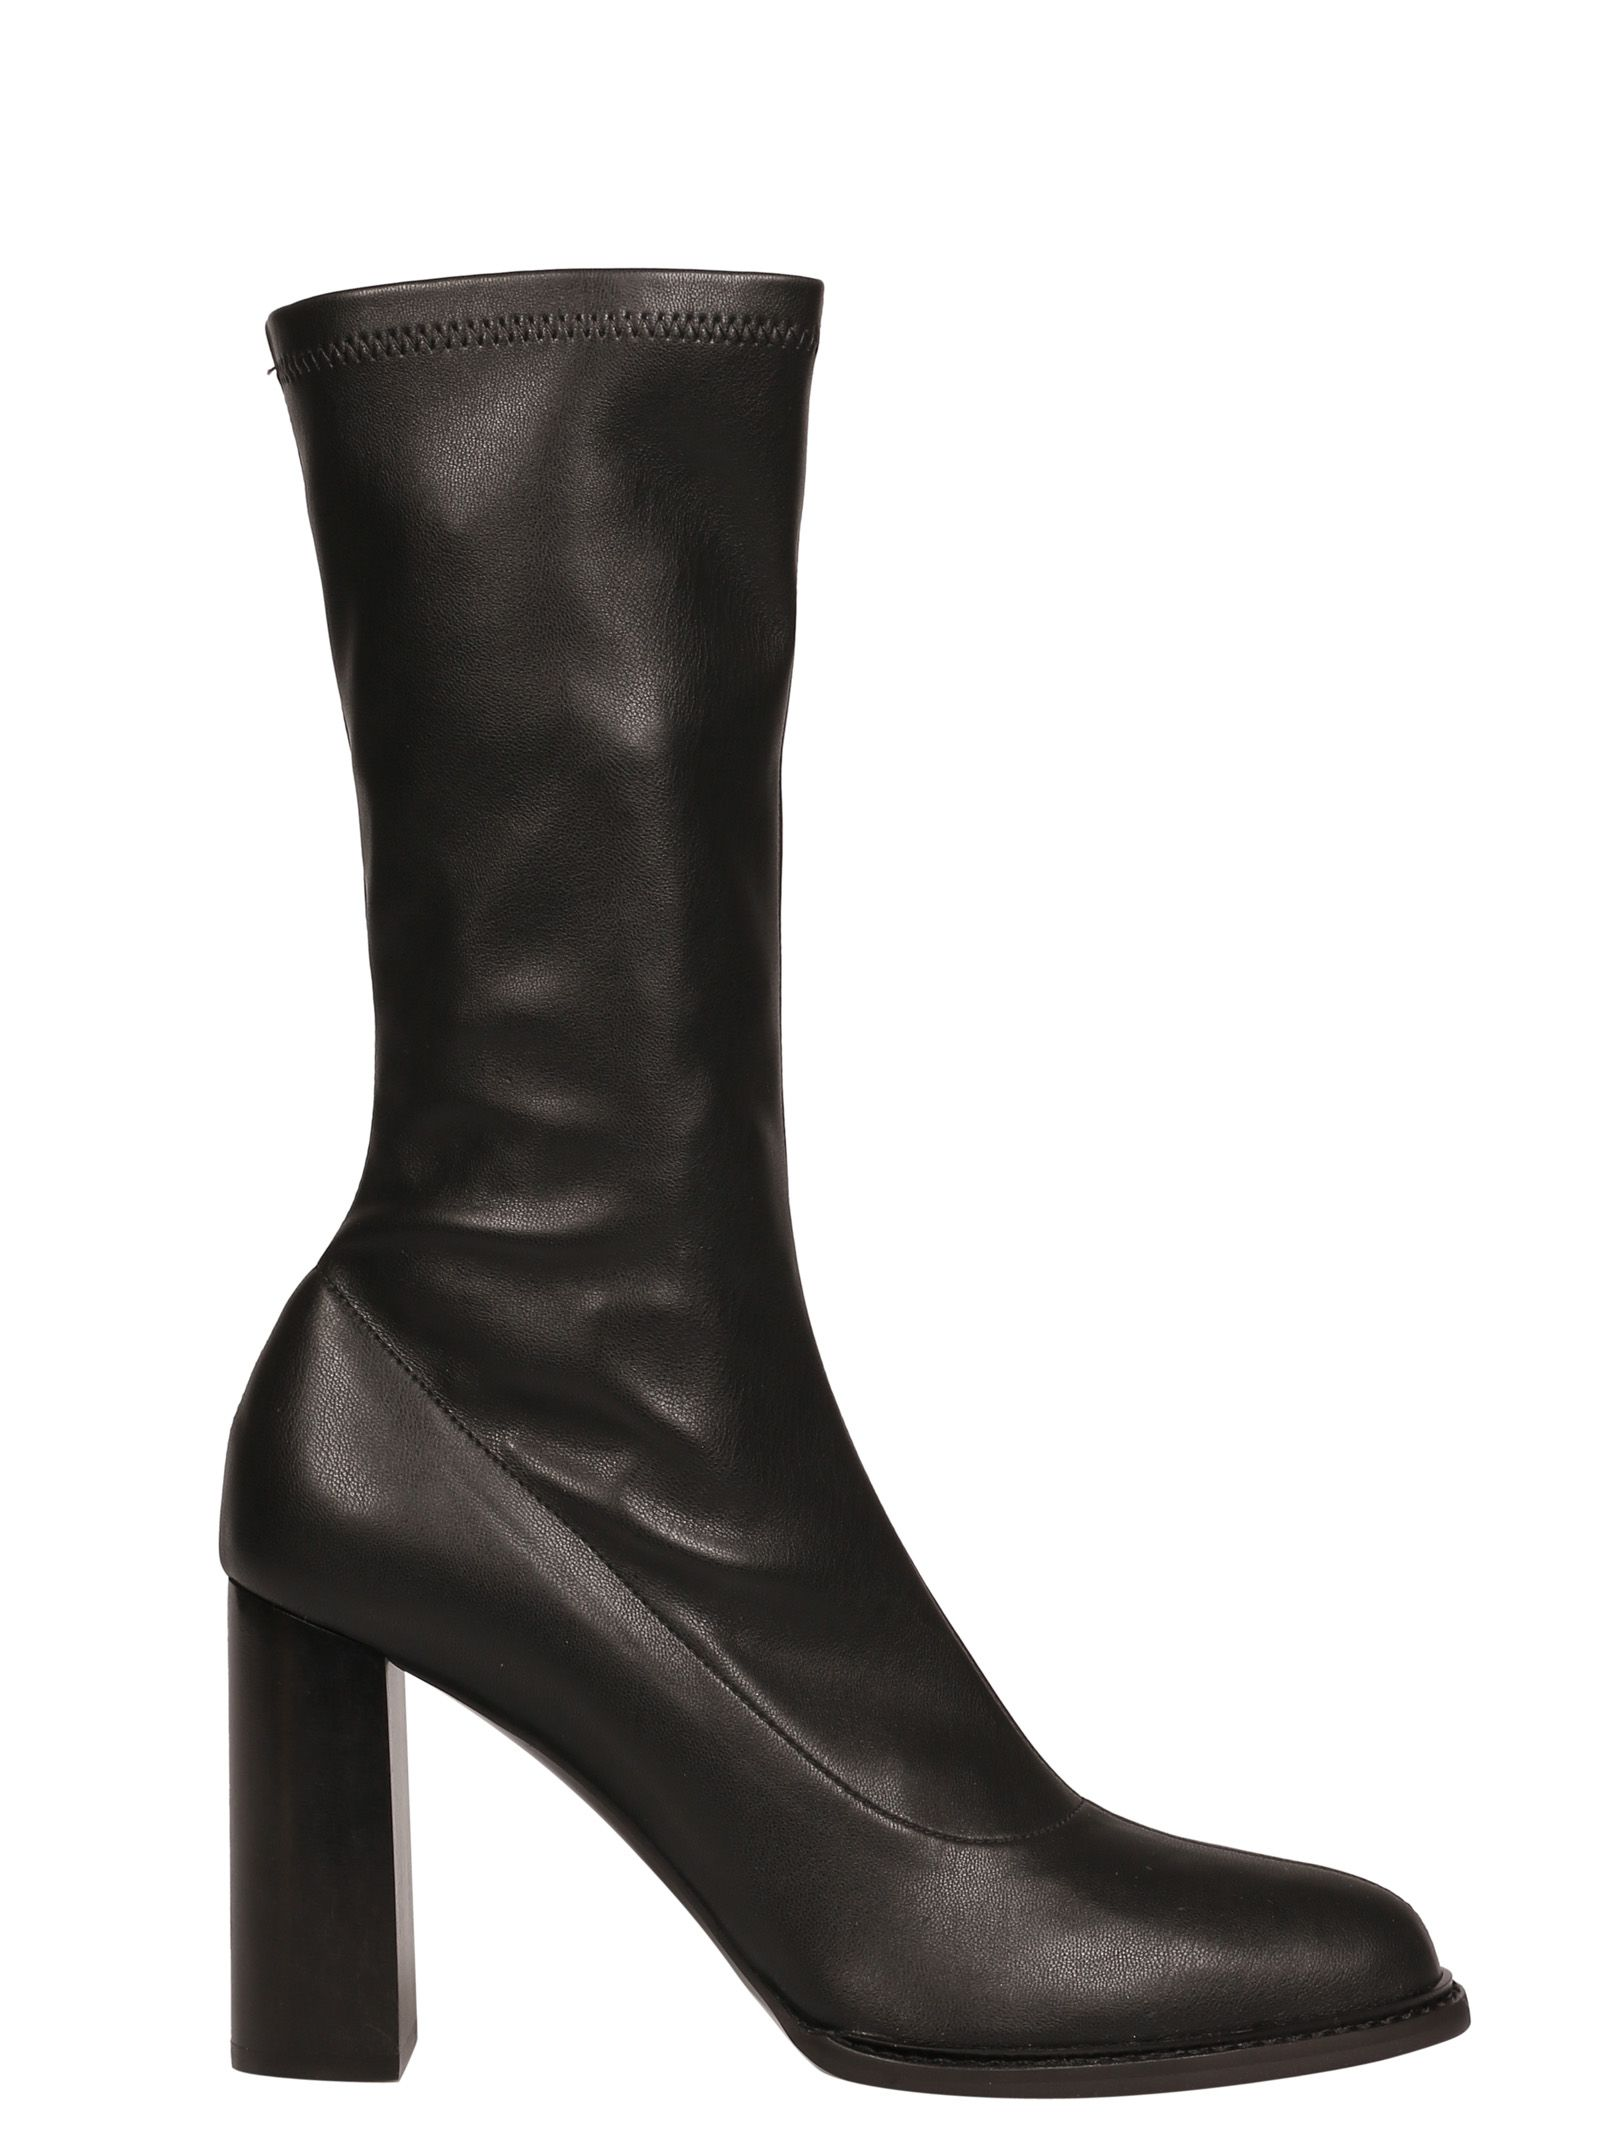 mid-calf block heel boots - Black Stella McCartney dpygJac